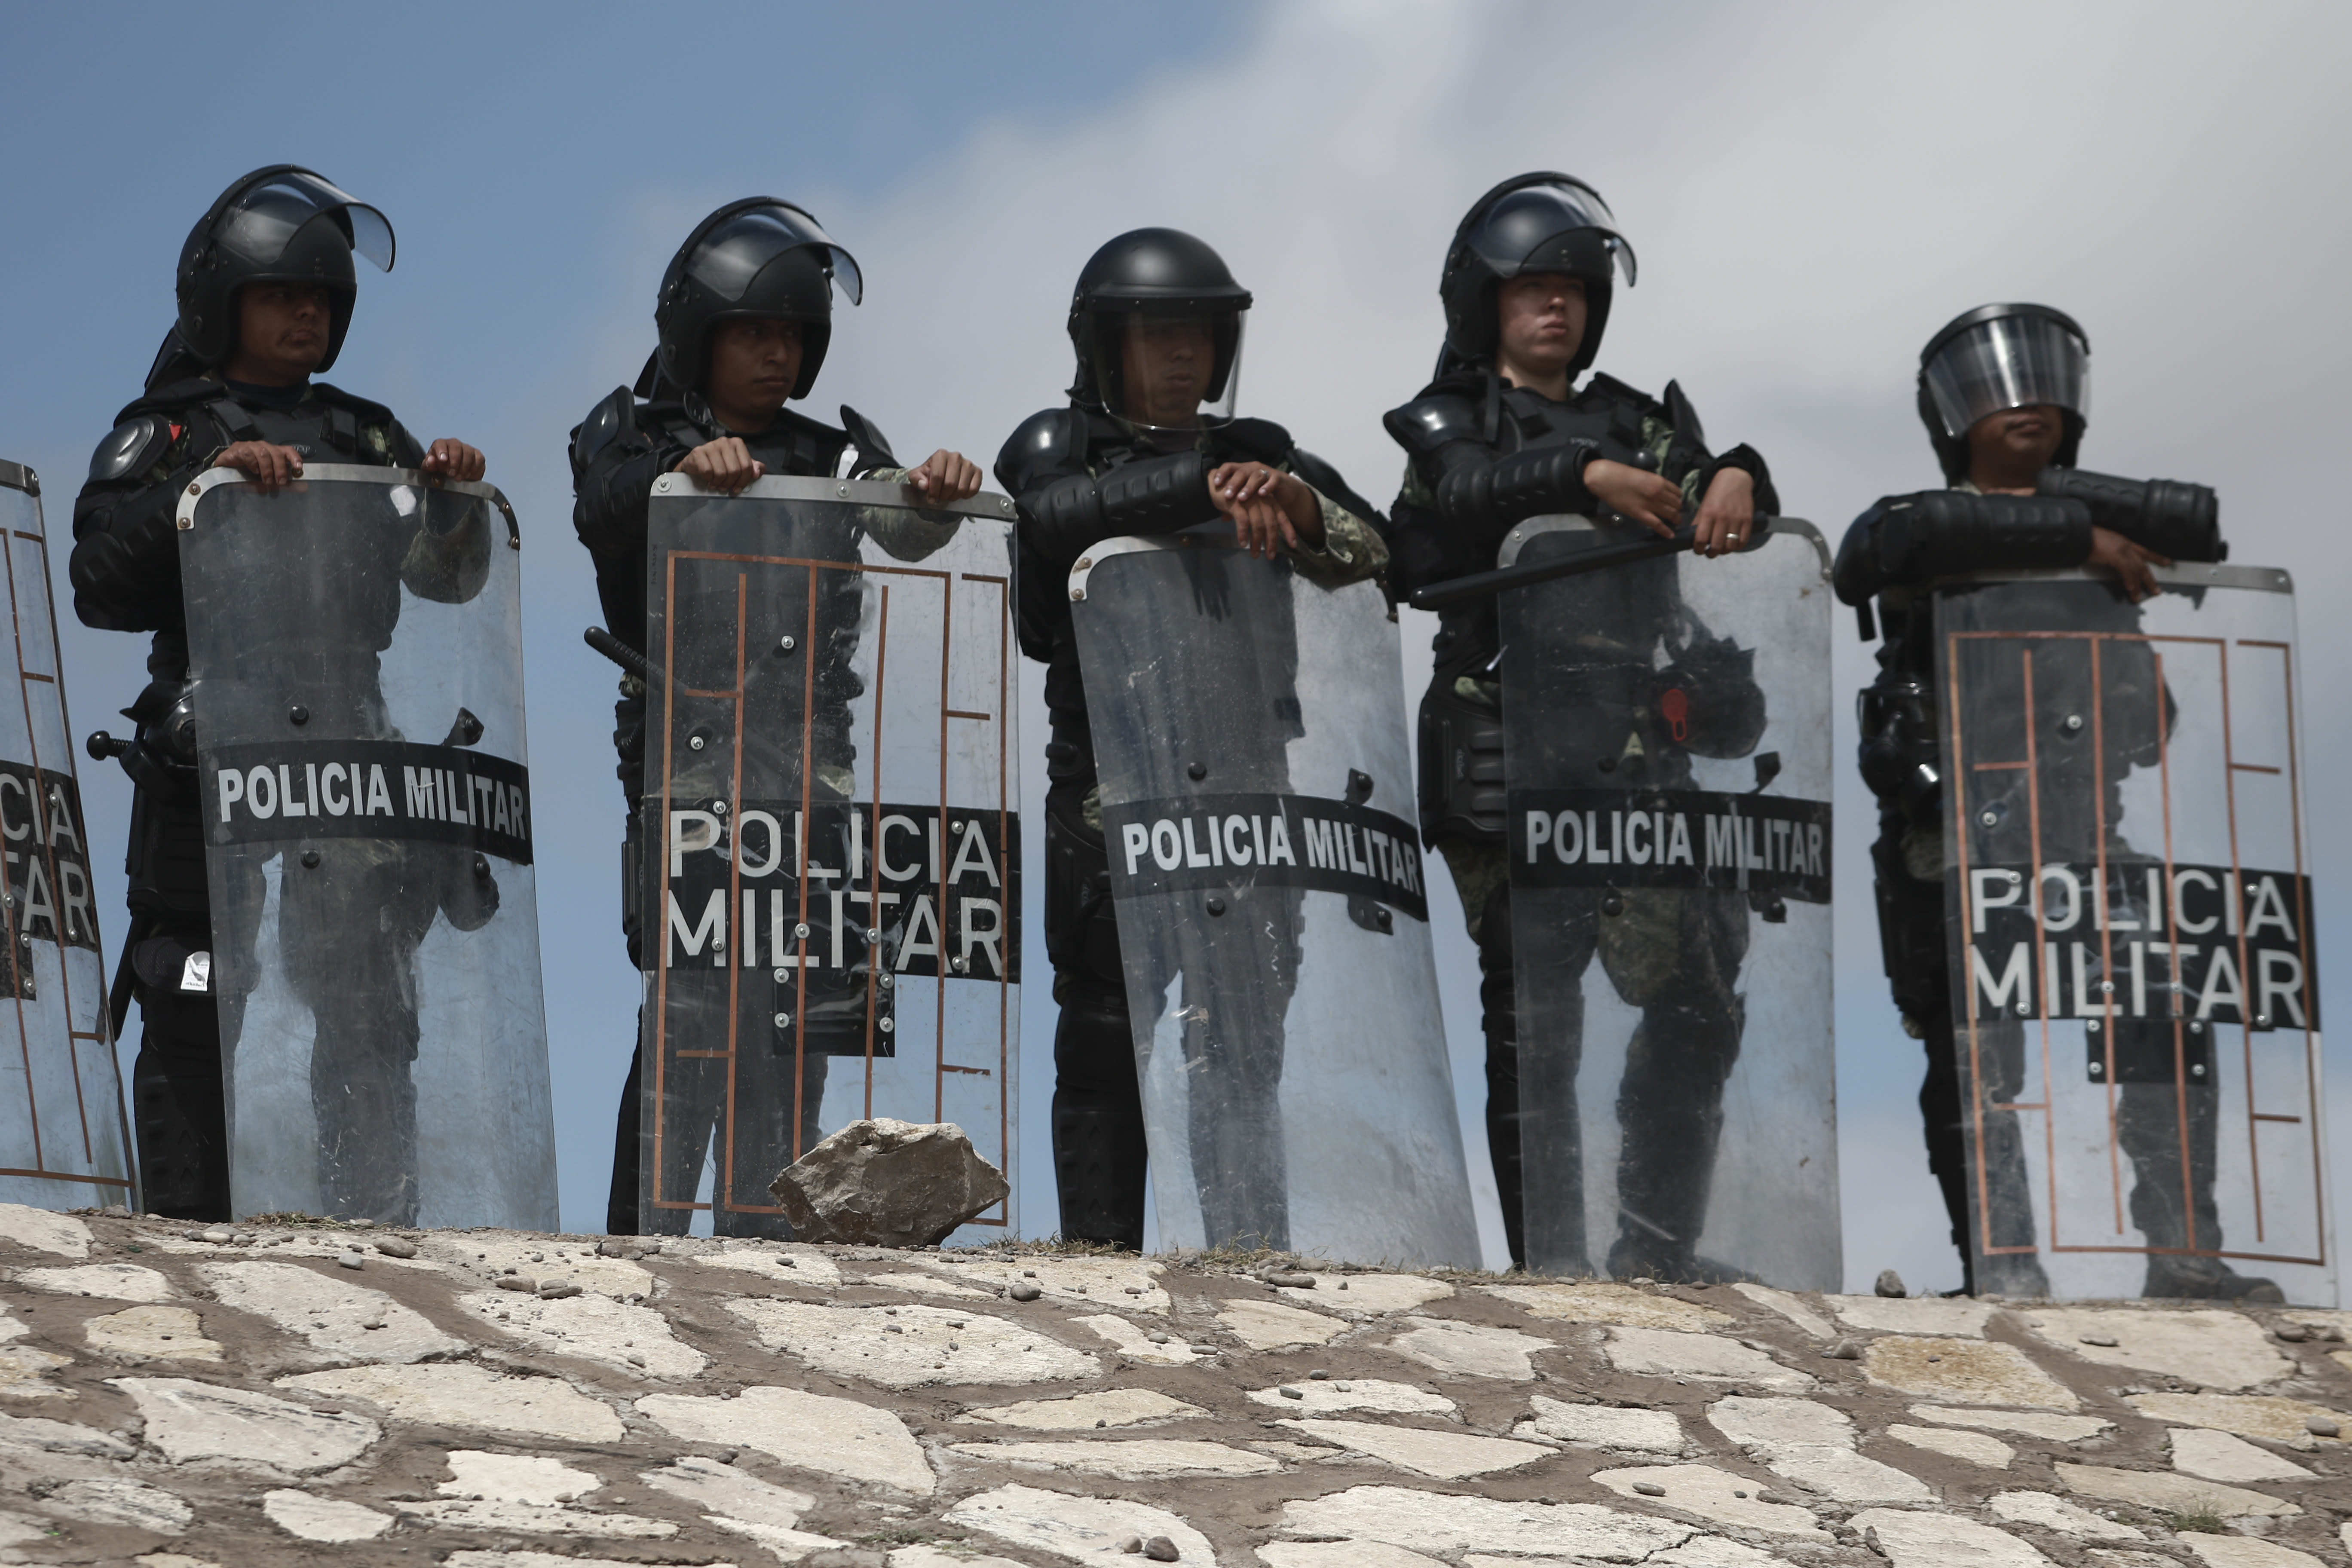 National Guard troops equipped with riot gear stand guard at Las Pilas dam, two days after withdrawing from the nearby Boquilla dam after clashing with hundreds of farmers, in Camargo, Chihuahua State, Mexico, Thursday, Sept. 10, 2020. President Andrés Manuel López Obrador said Thursday he regretted the killing of a woman and the wounding of her husband following a Tuesday clash between National Guard troops and farmers over water. (AP Photo Christian Chavez)